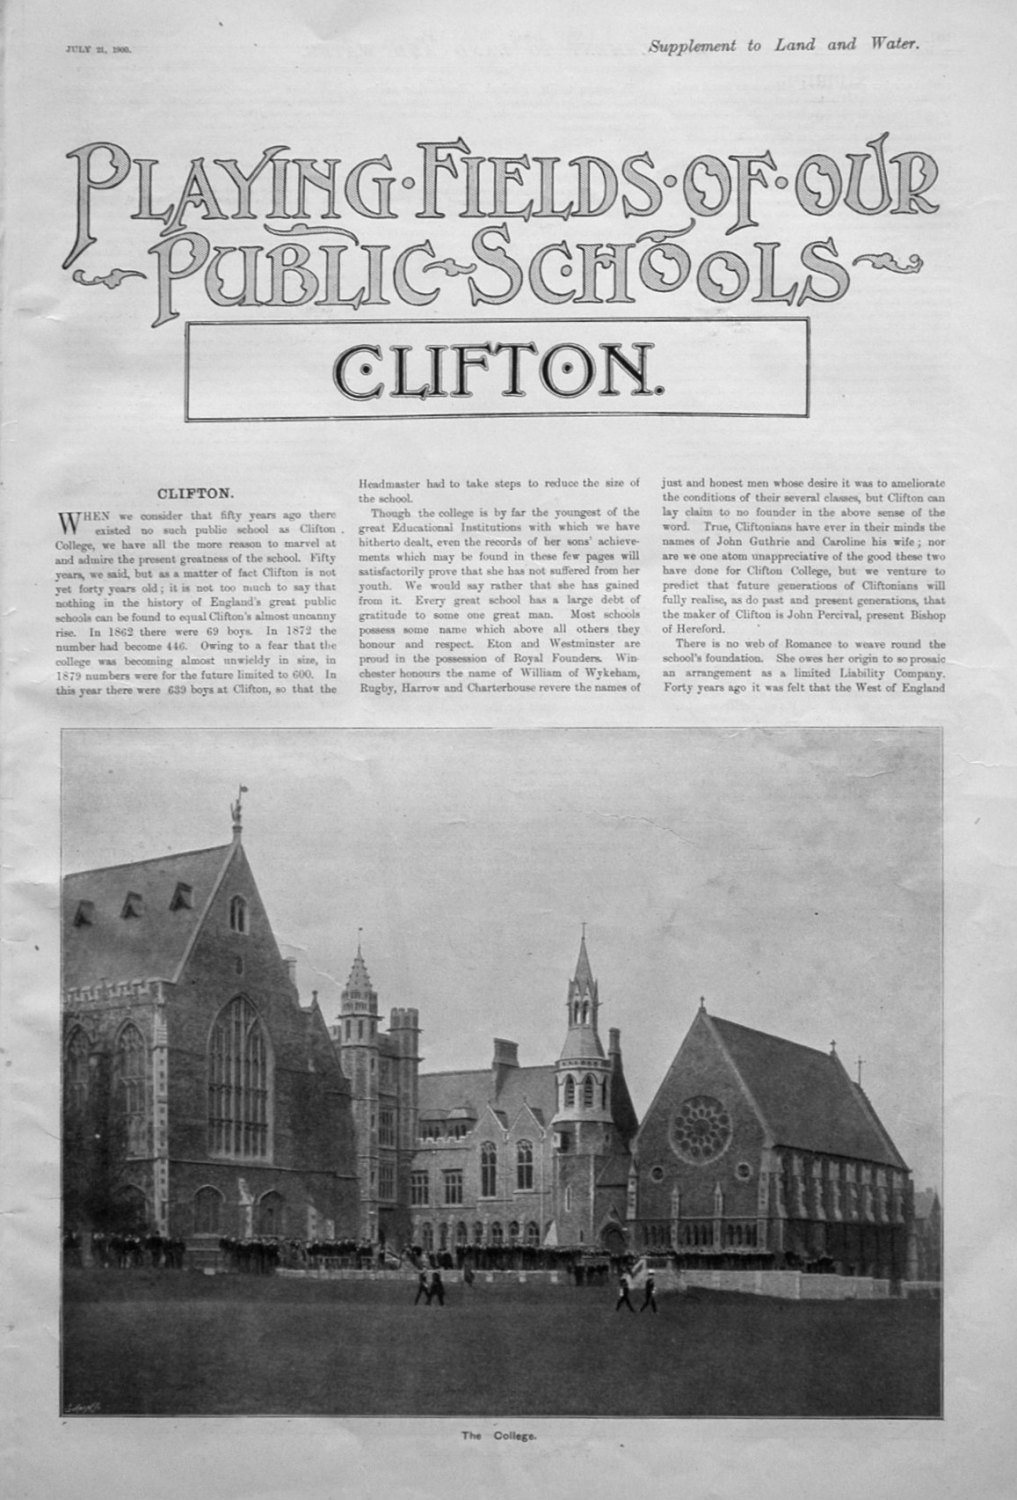 Playing Fields of our Public Schools. July 21st 1900.